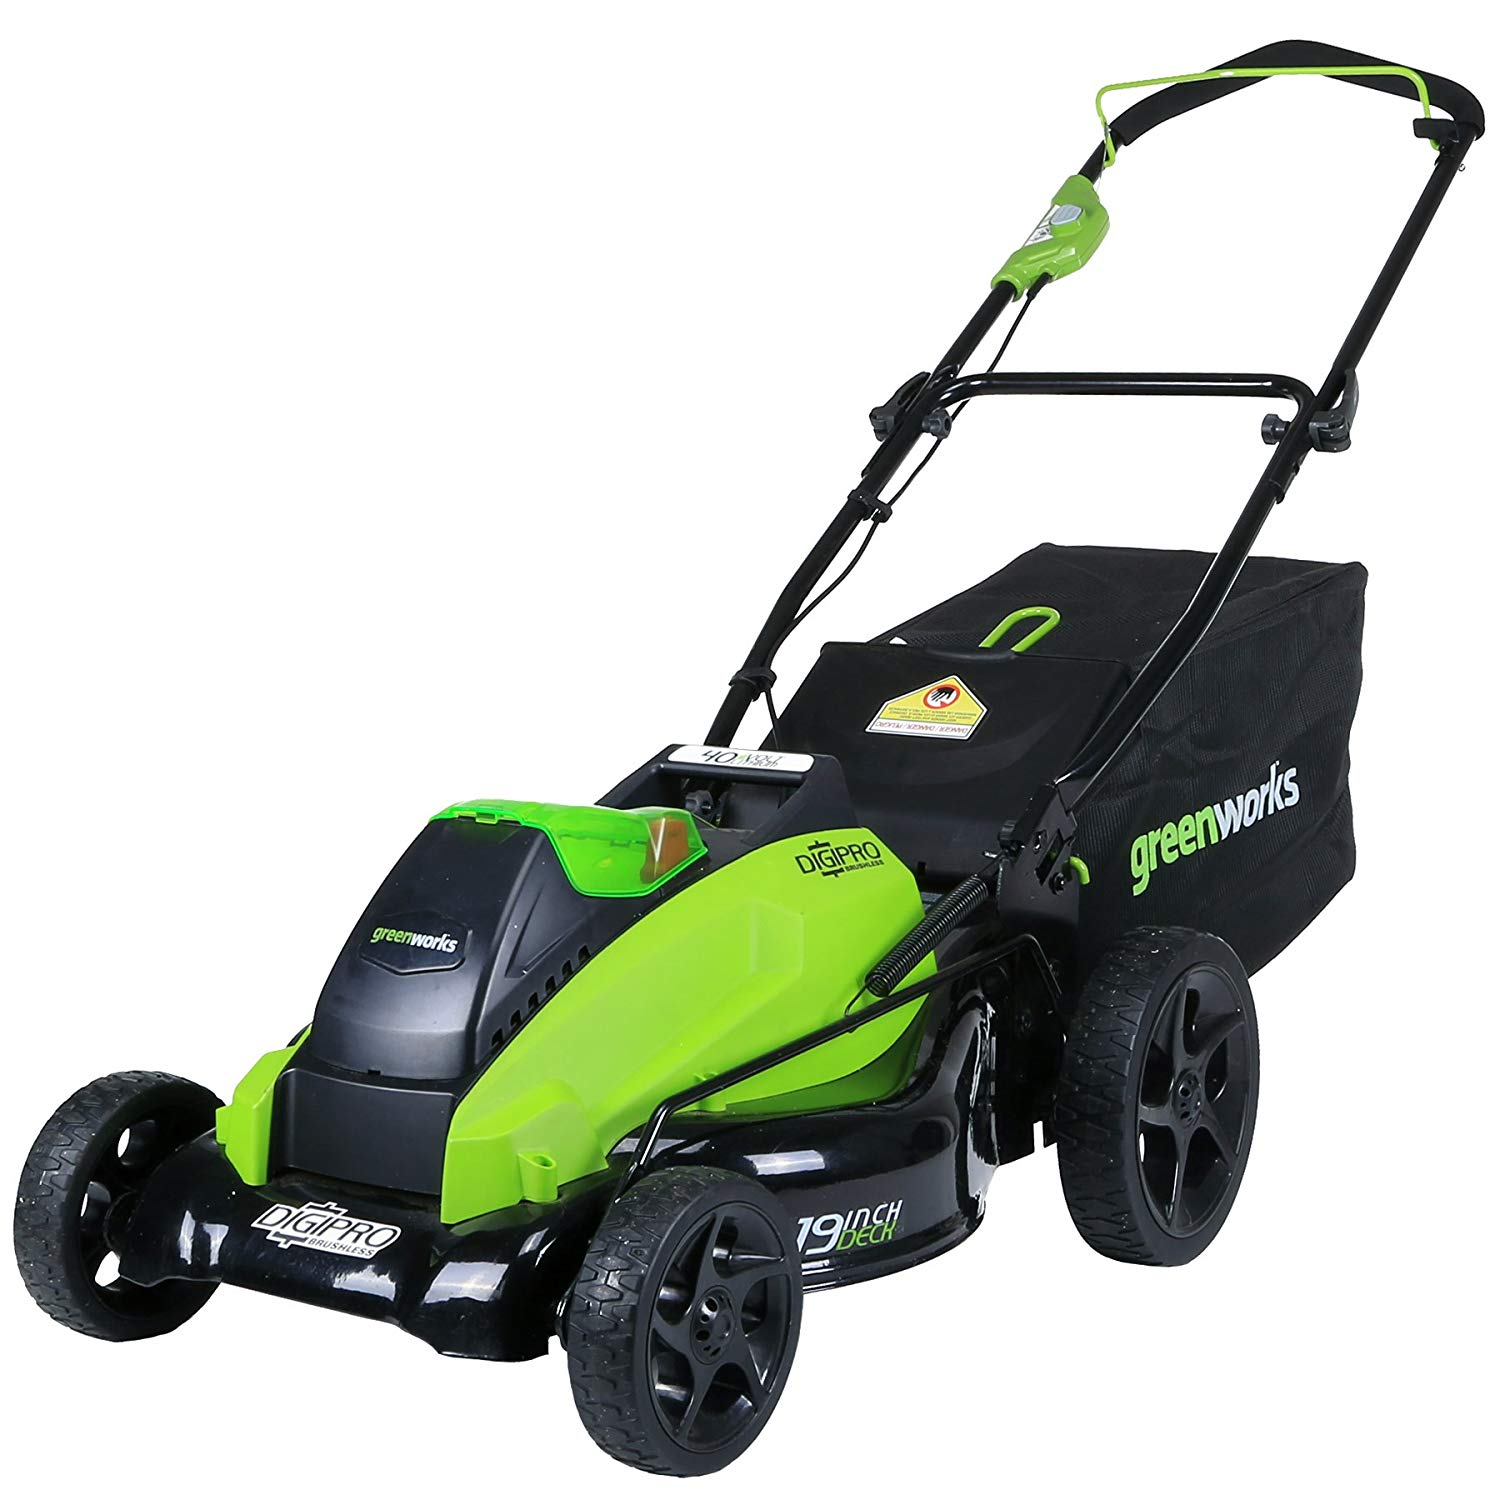 (2501302) 19-Inch 40V Cordless Lawn Mower from Greenworks